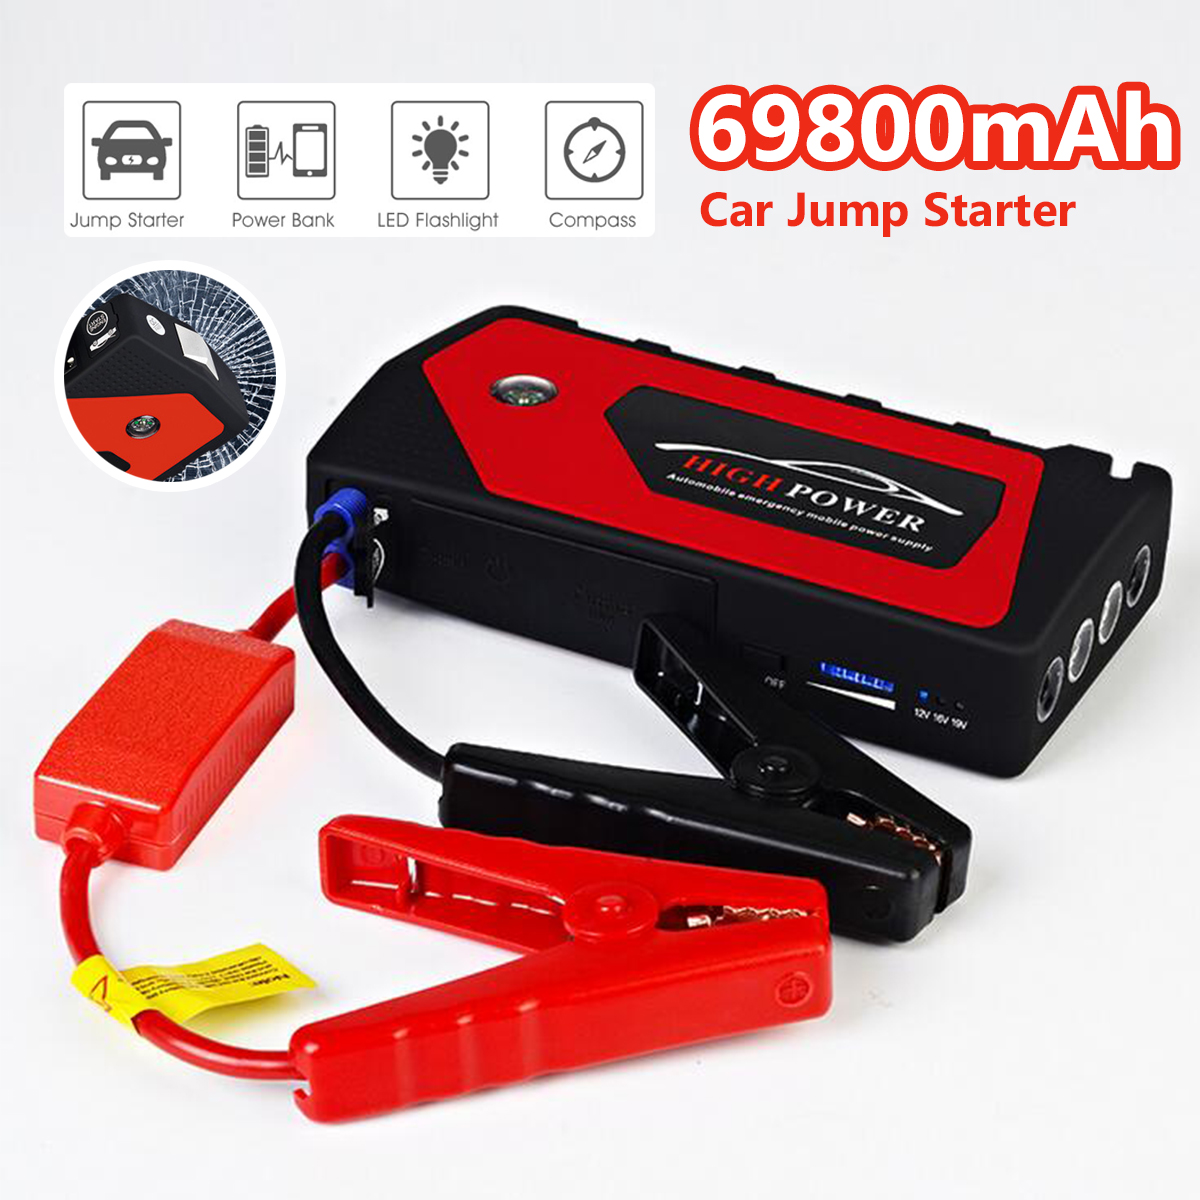 Car Jump Starter Emergency 69800mAh 12V Starting Device 4USB SOS LED Light Mobile Power Bank Car Charger For Car Battery Booster [sa] hugong vacuum high voltage relays jt 5 027 z jt 5 027 h changeover contact voltage 20kv 2pcs lot